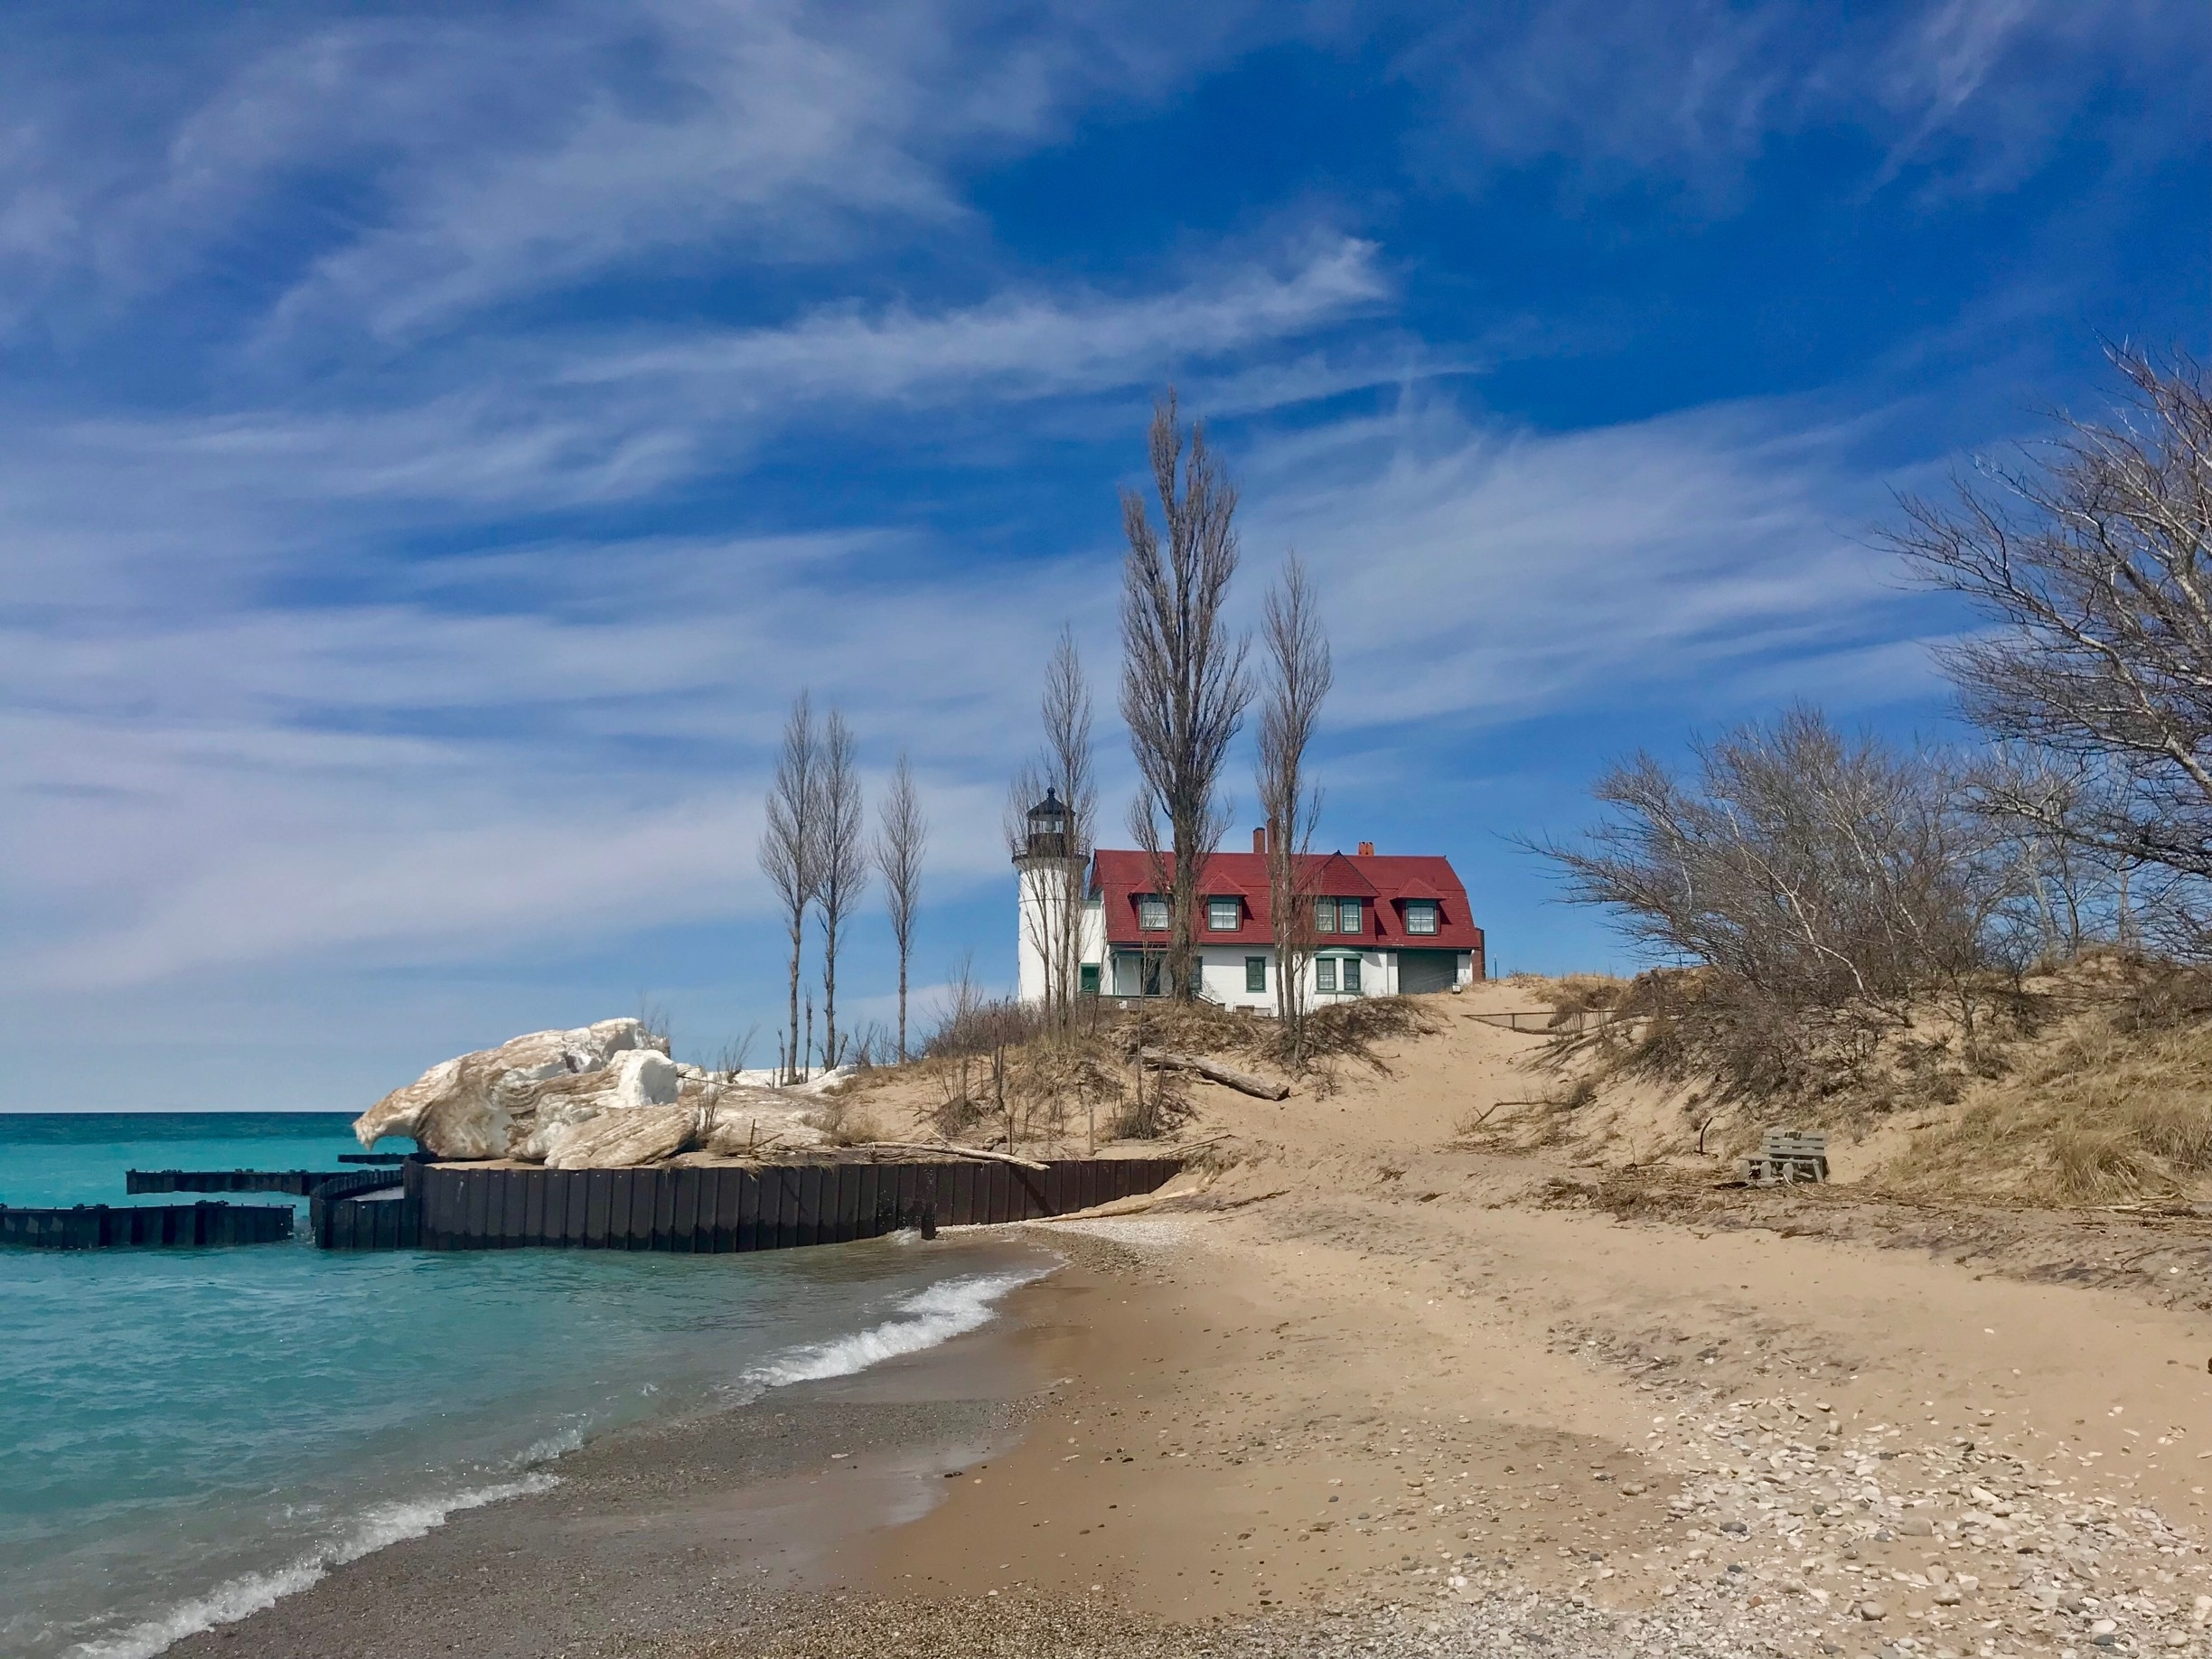 Point Betsie Lighthouse, Frankfort, Michigan, United States of America